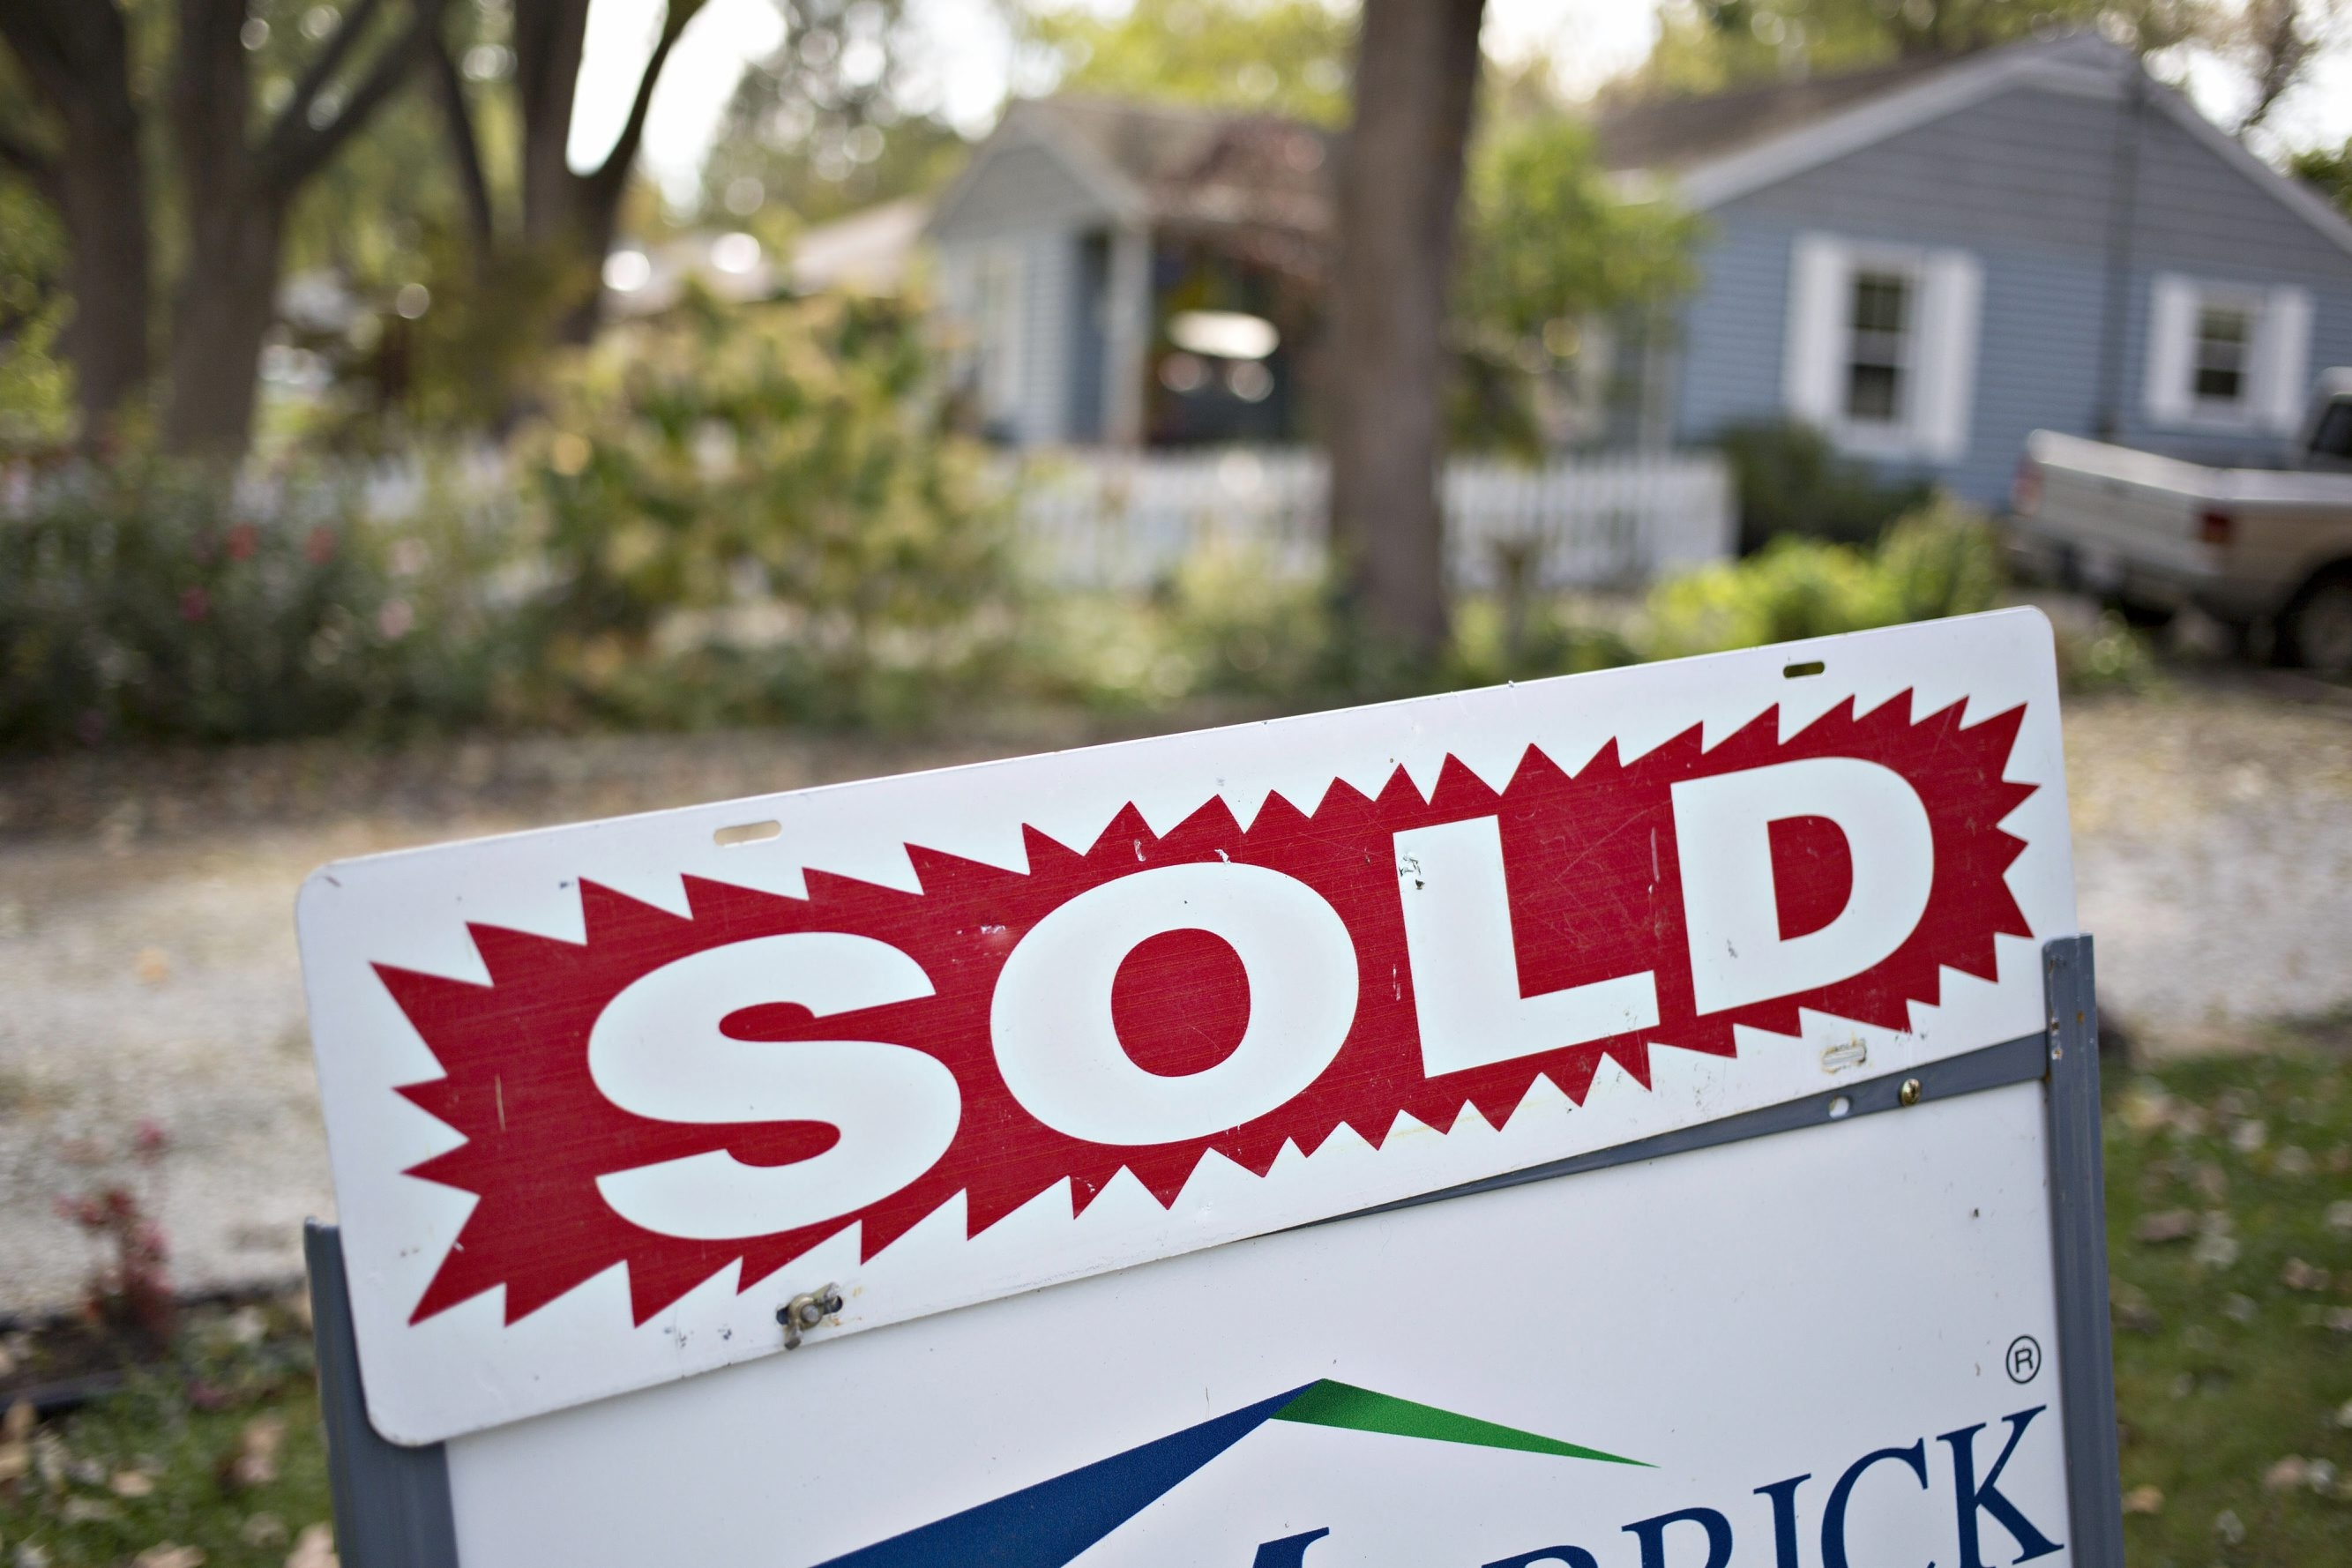 Closed home sales soared 32.9 percent from February 2015, hitting 682 from 513, according to new data from the Buffalo Niagara Association of Realtors.